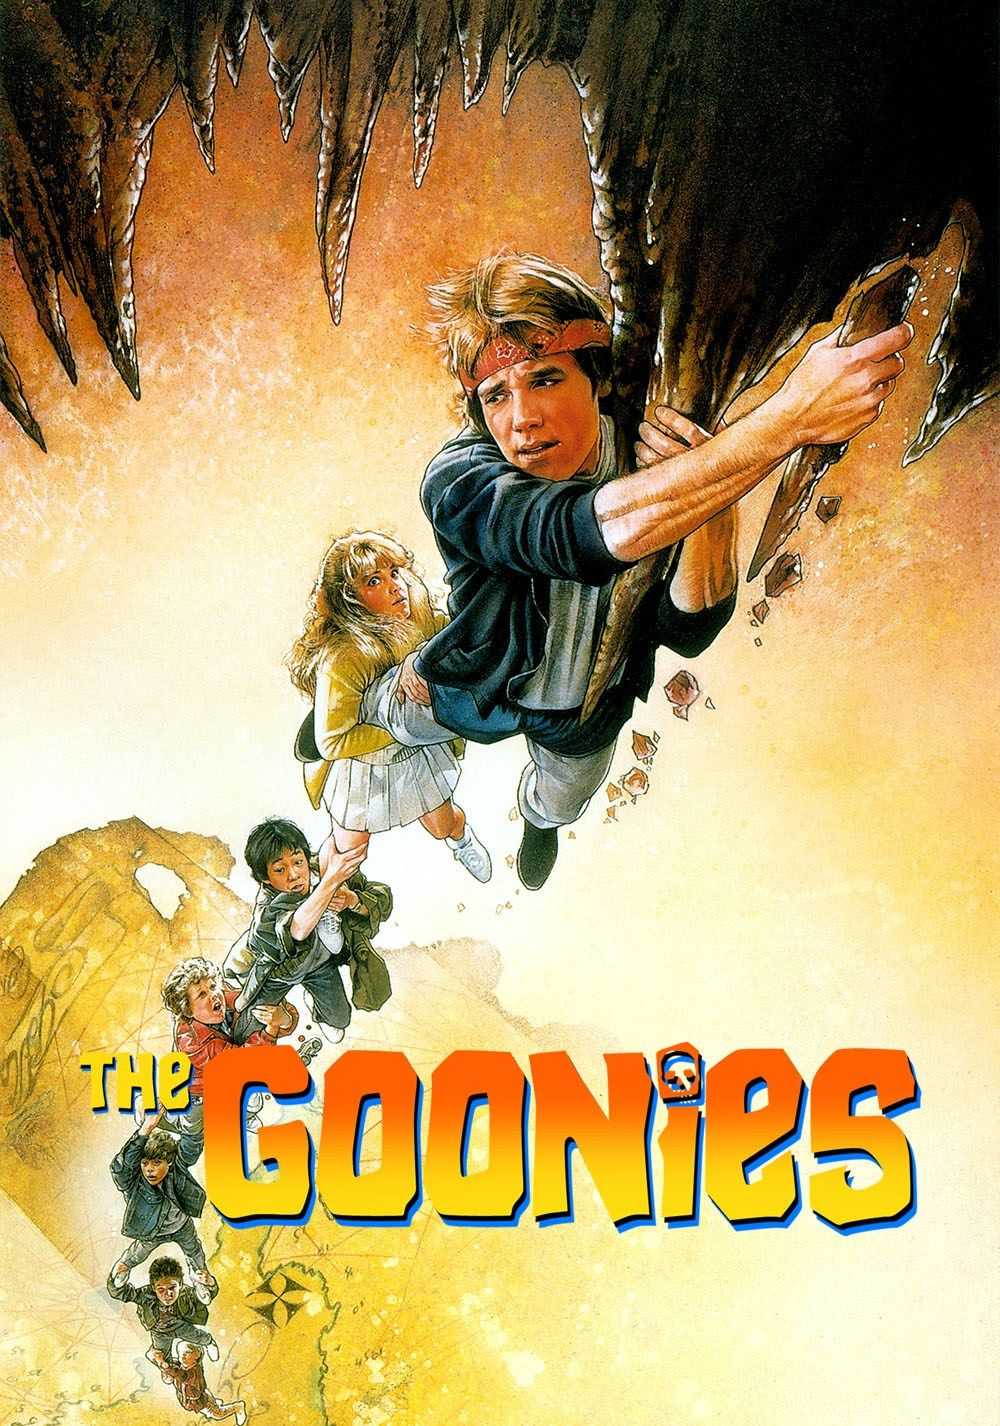 The Goonies a movie to watch after seeing Stranger Things